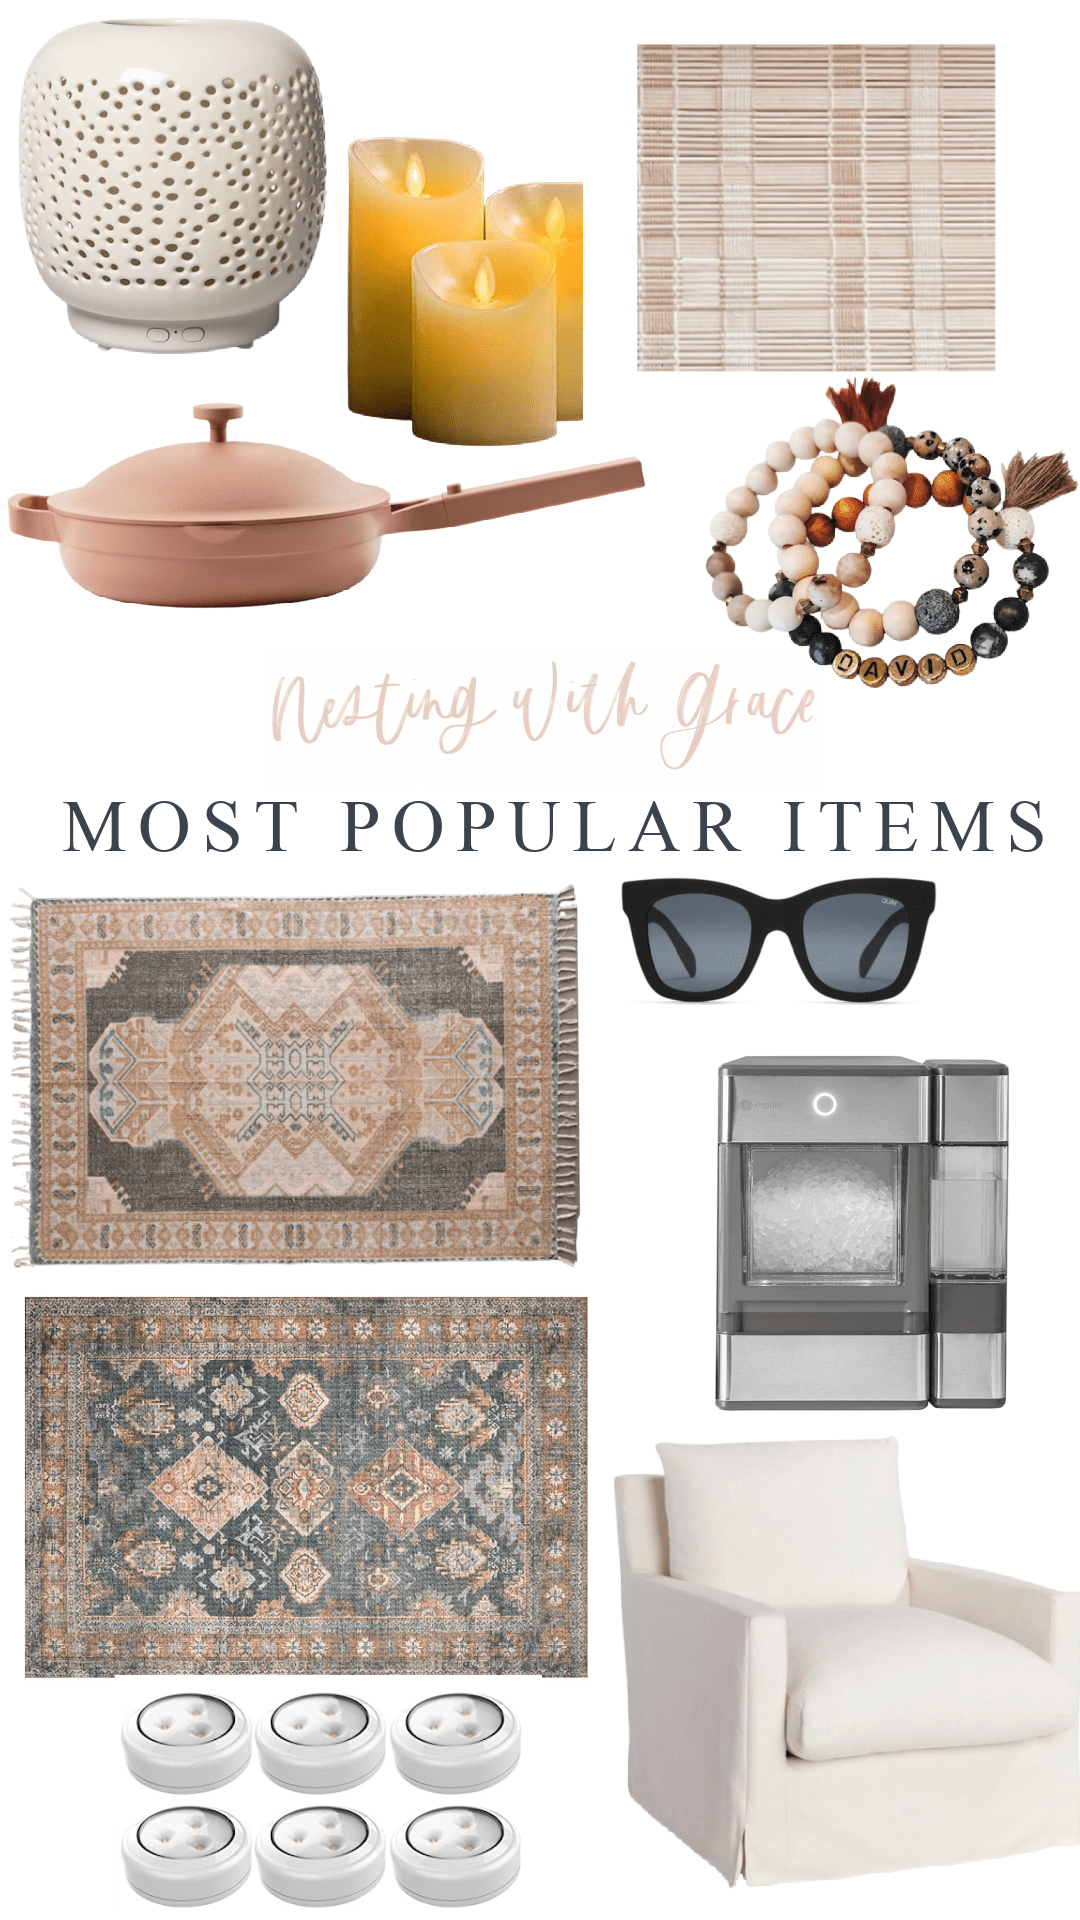 Friday Favorites- Wallpapered Closet, Plants, Sleeping Pillows and more